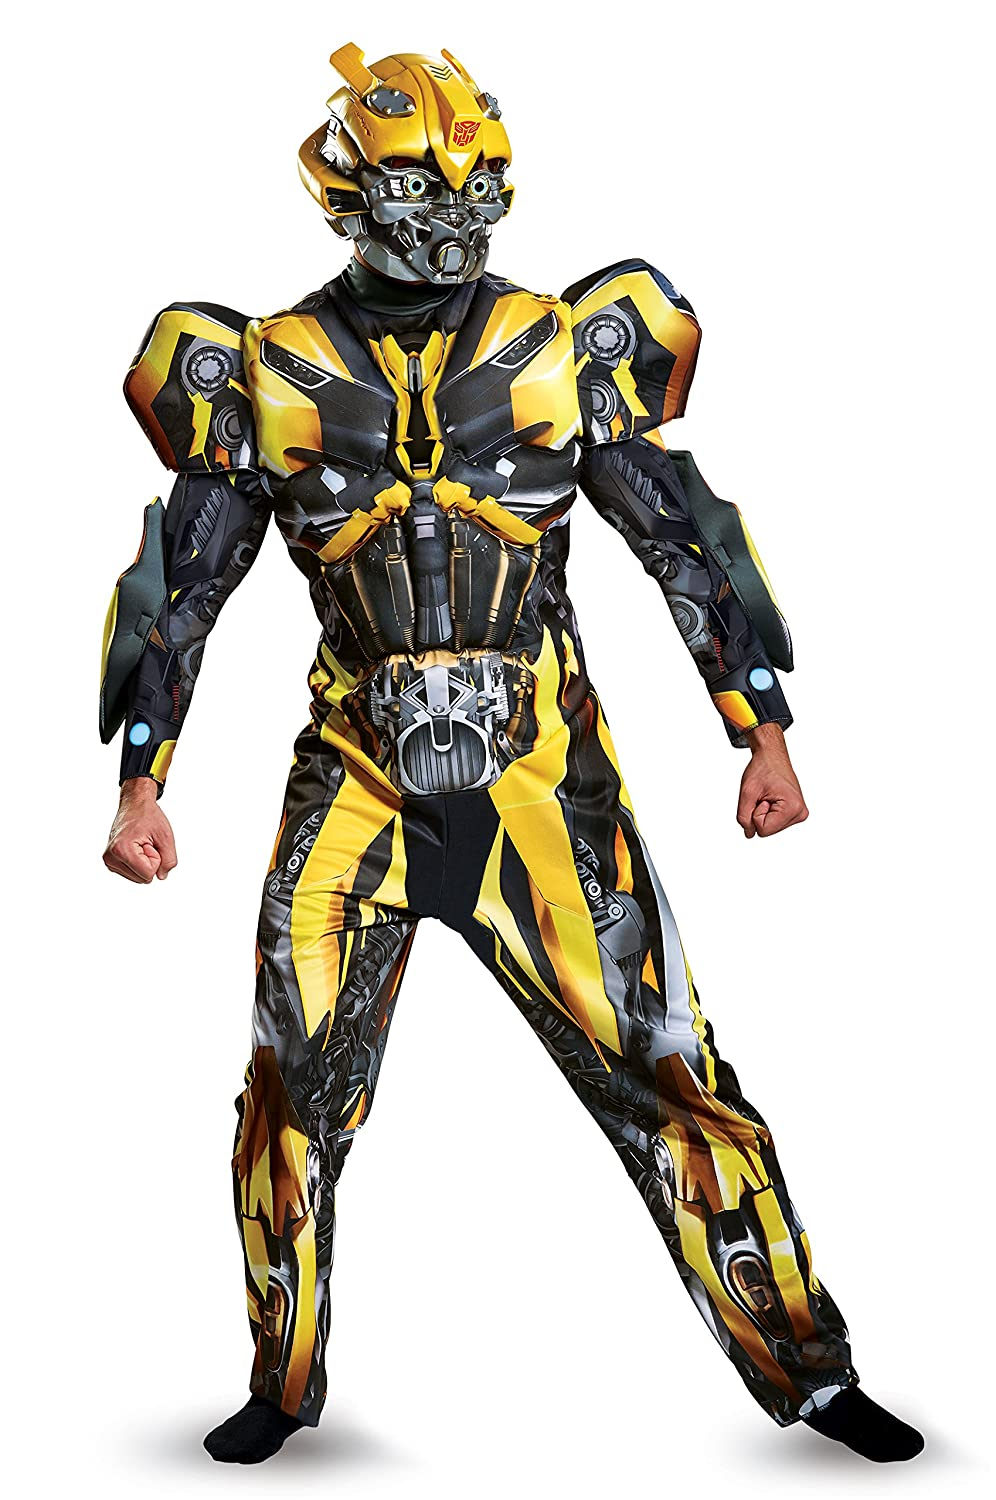 Disguise Transformers 5 Adult Deluxe Bumblebee Fancy Dress Costume X-Large